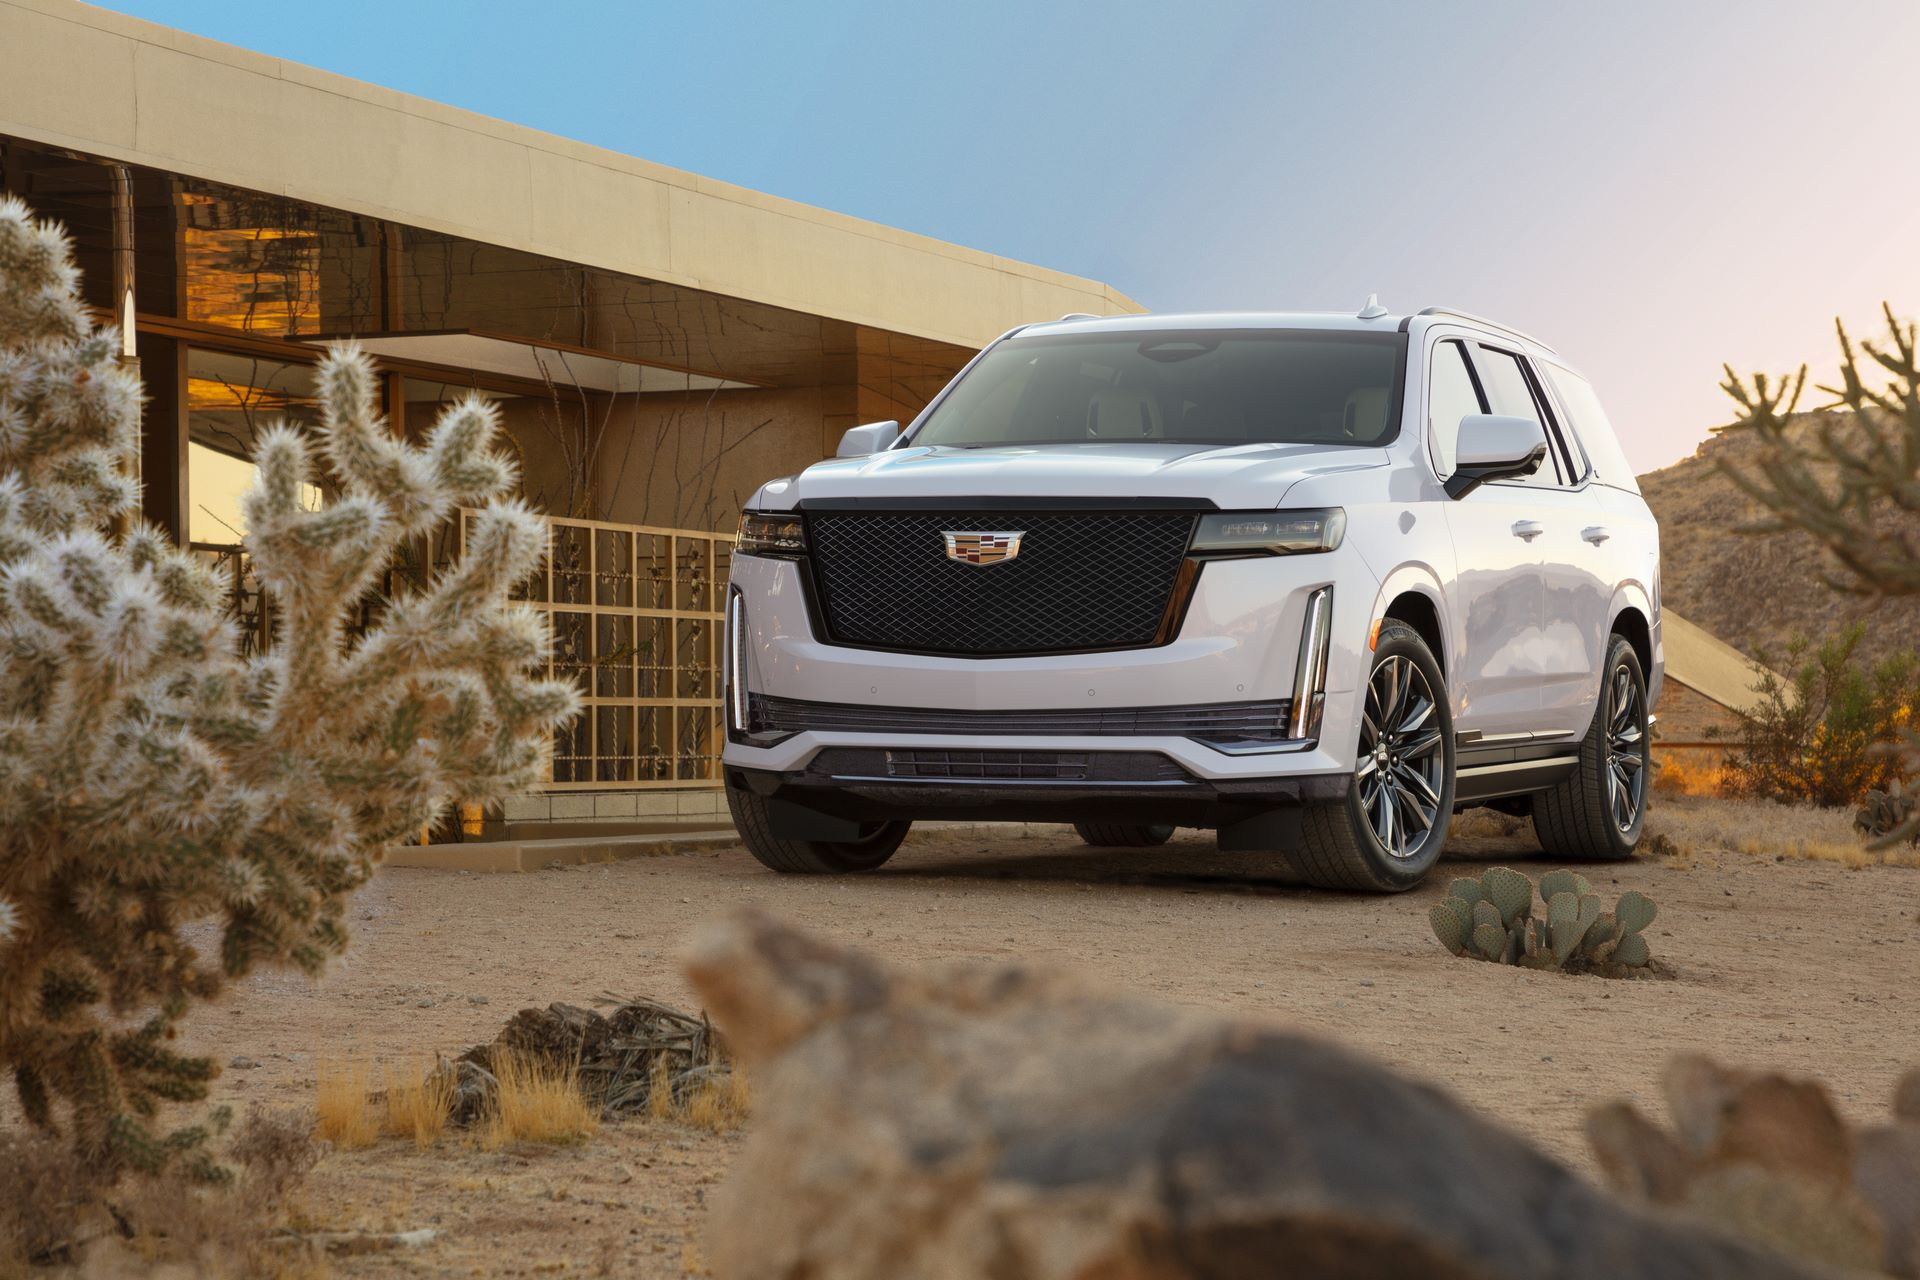 The 2021 Escalade has the bold presence and exclusive technology to elevate the extraordinary and make every drive feel like an occasion.